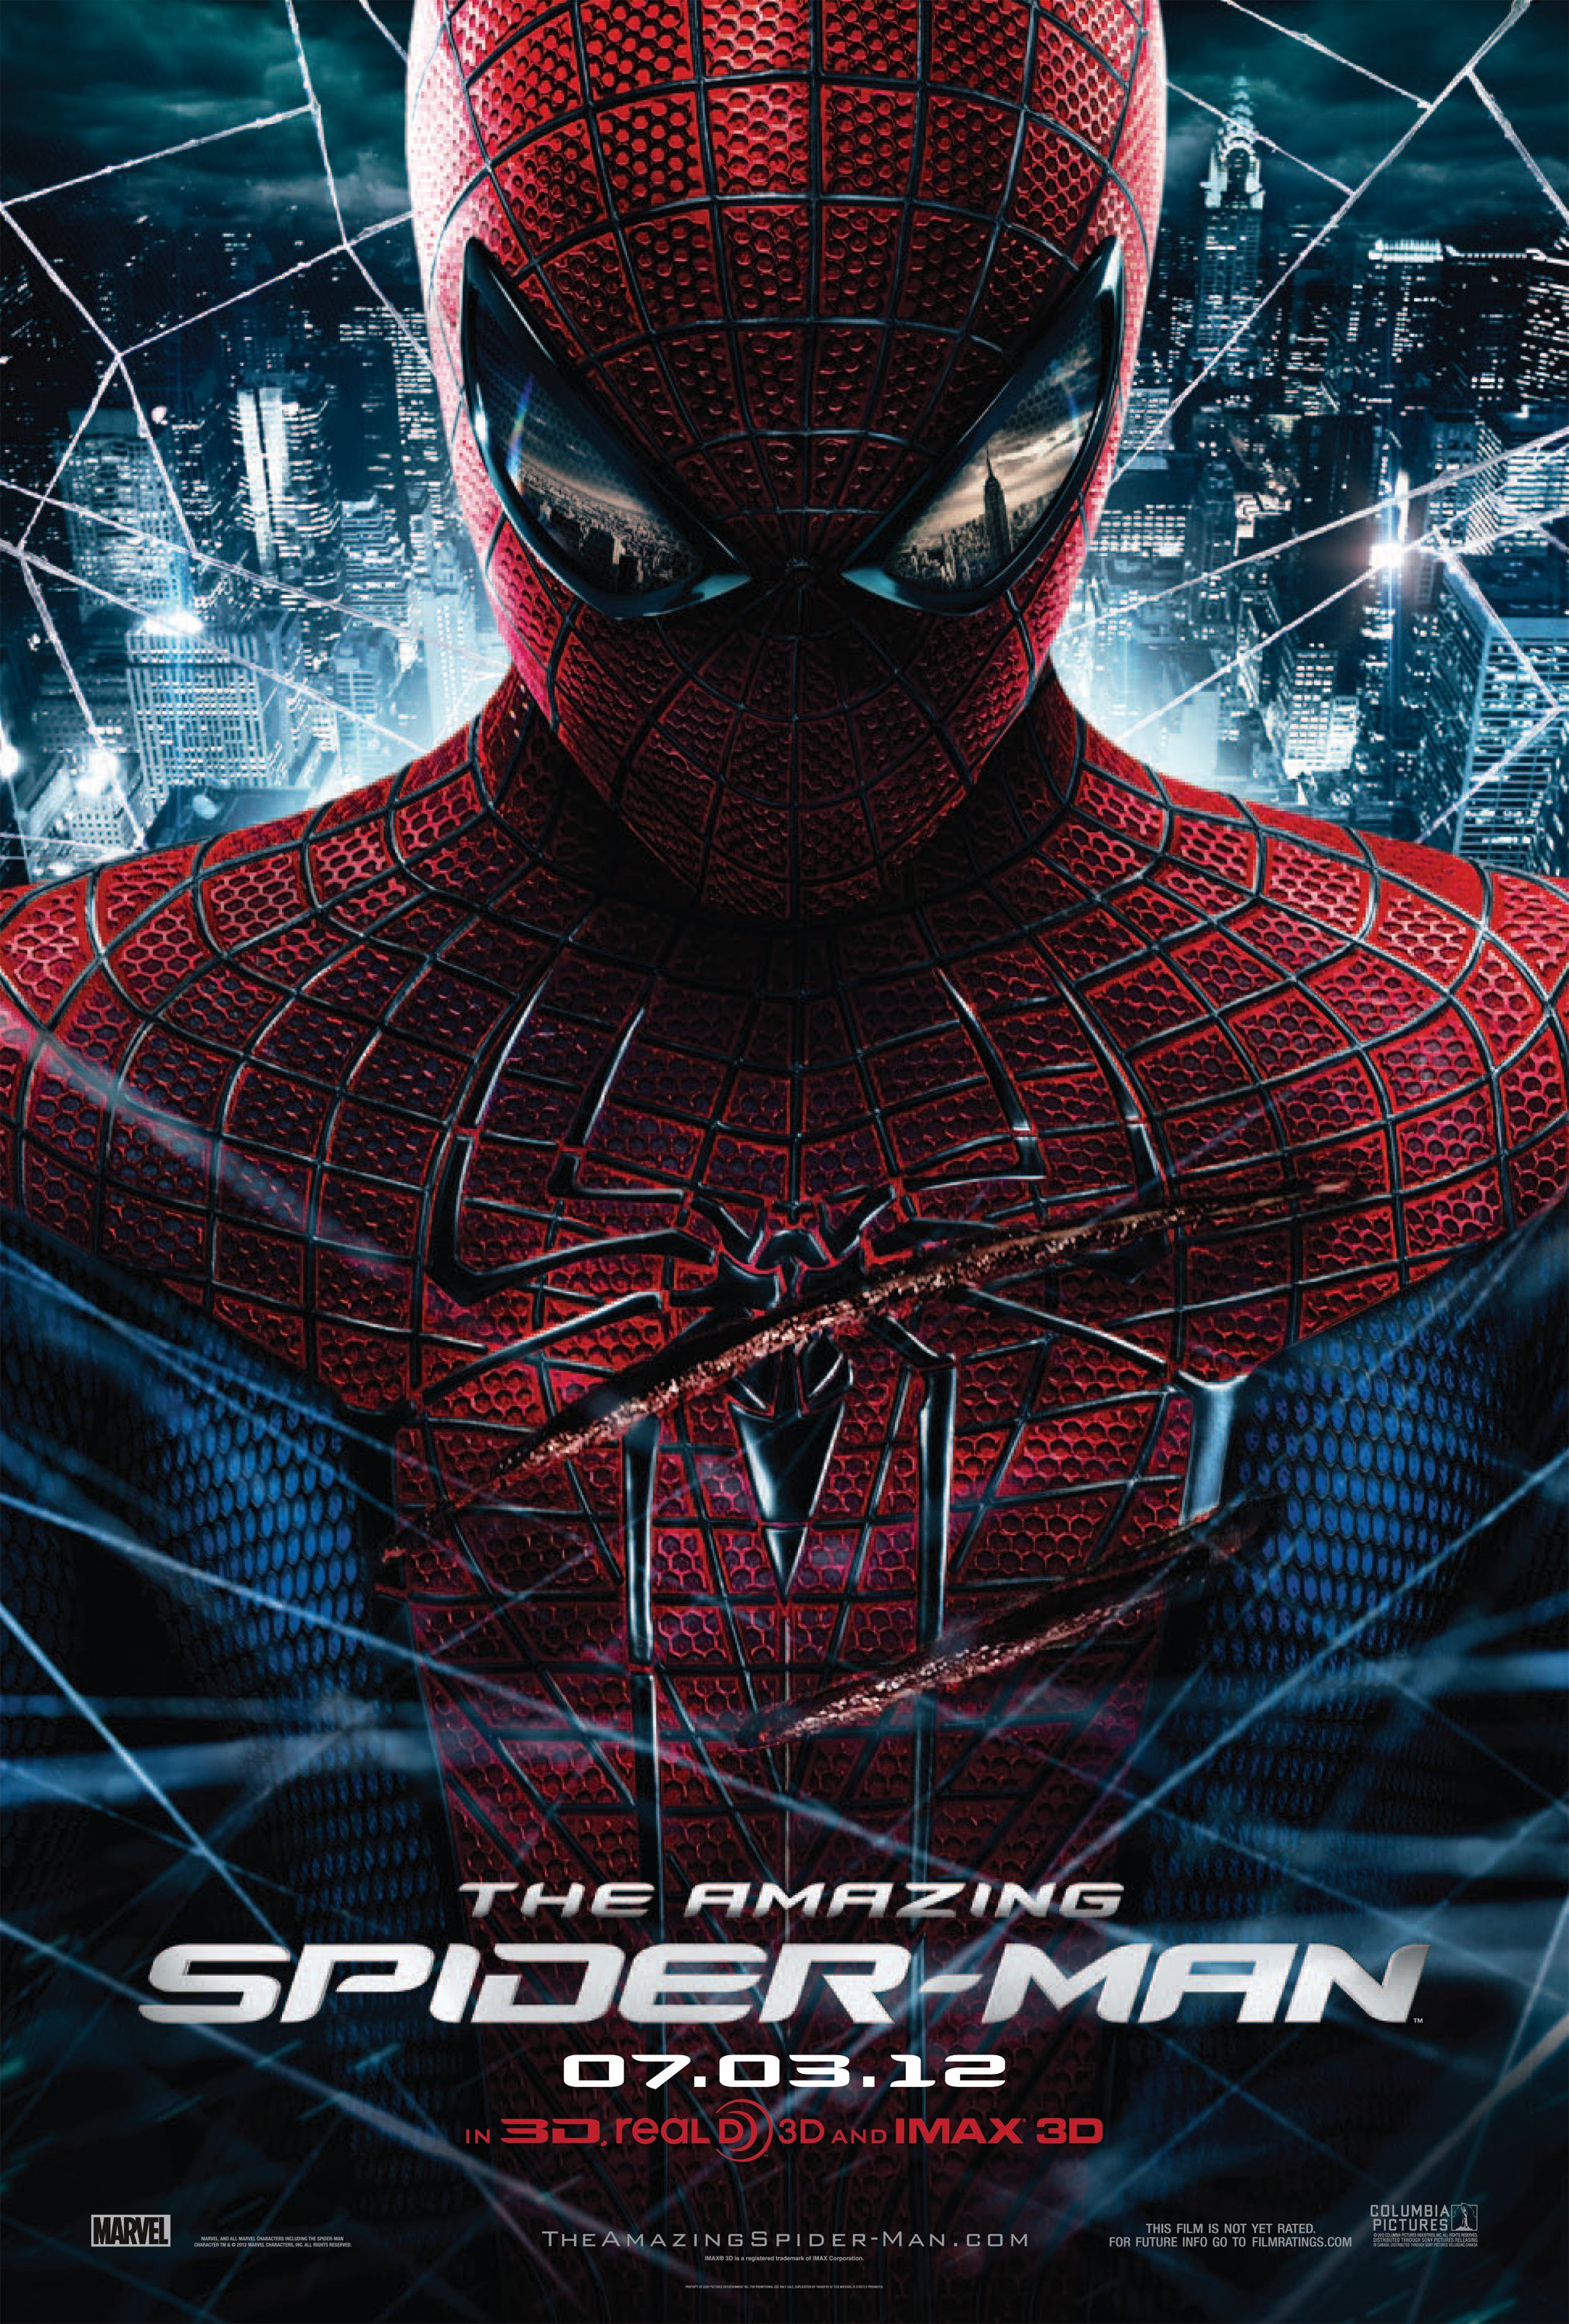 The Amazing Spider-Man (película de 2012)